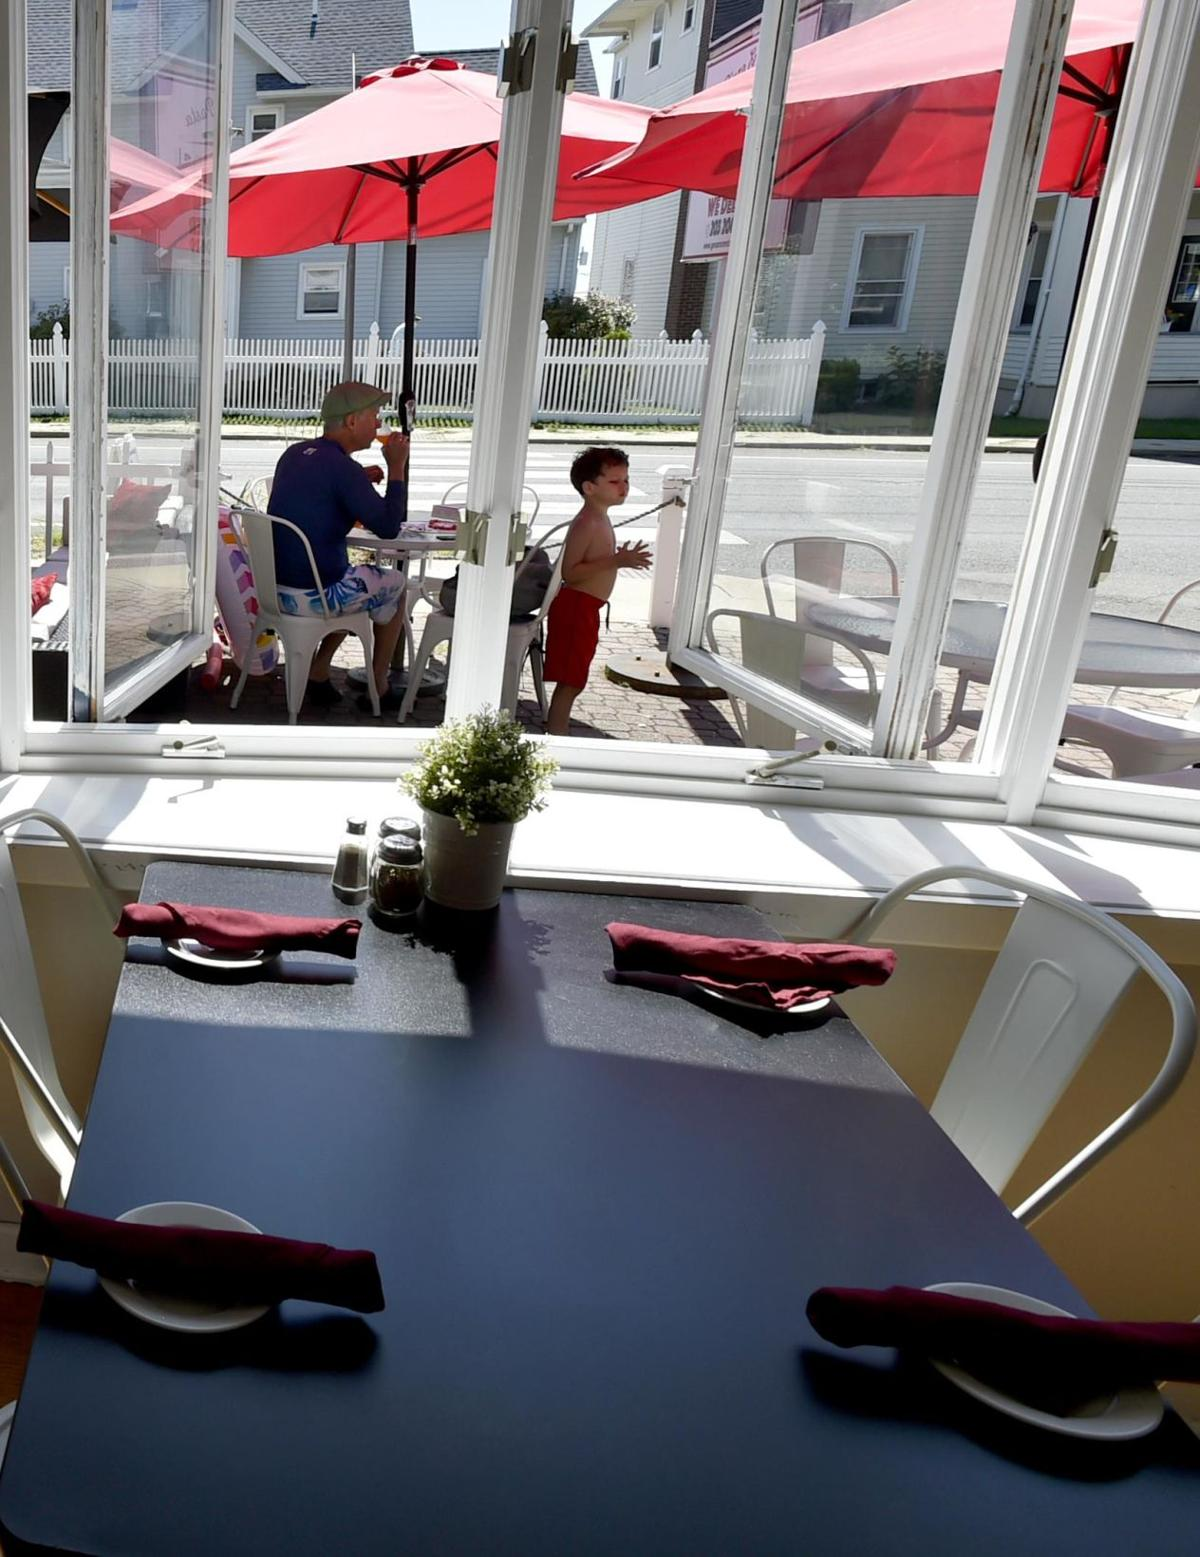 Genaros in Short Beach offers 'out of this world' Italian cuisine